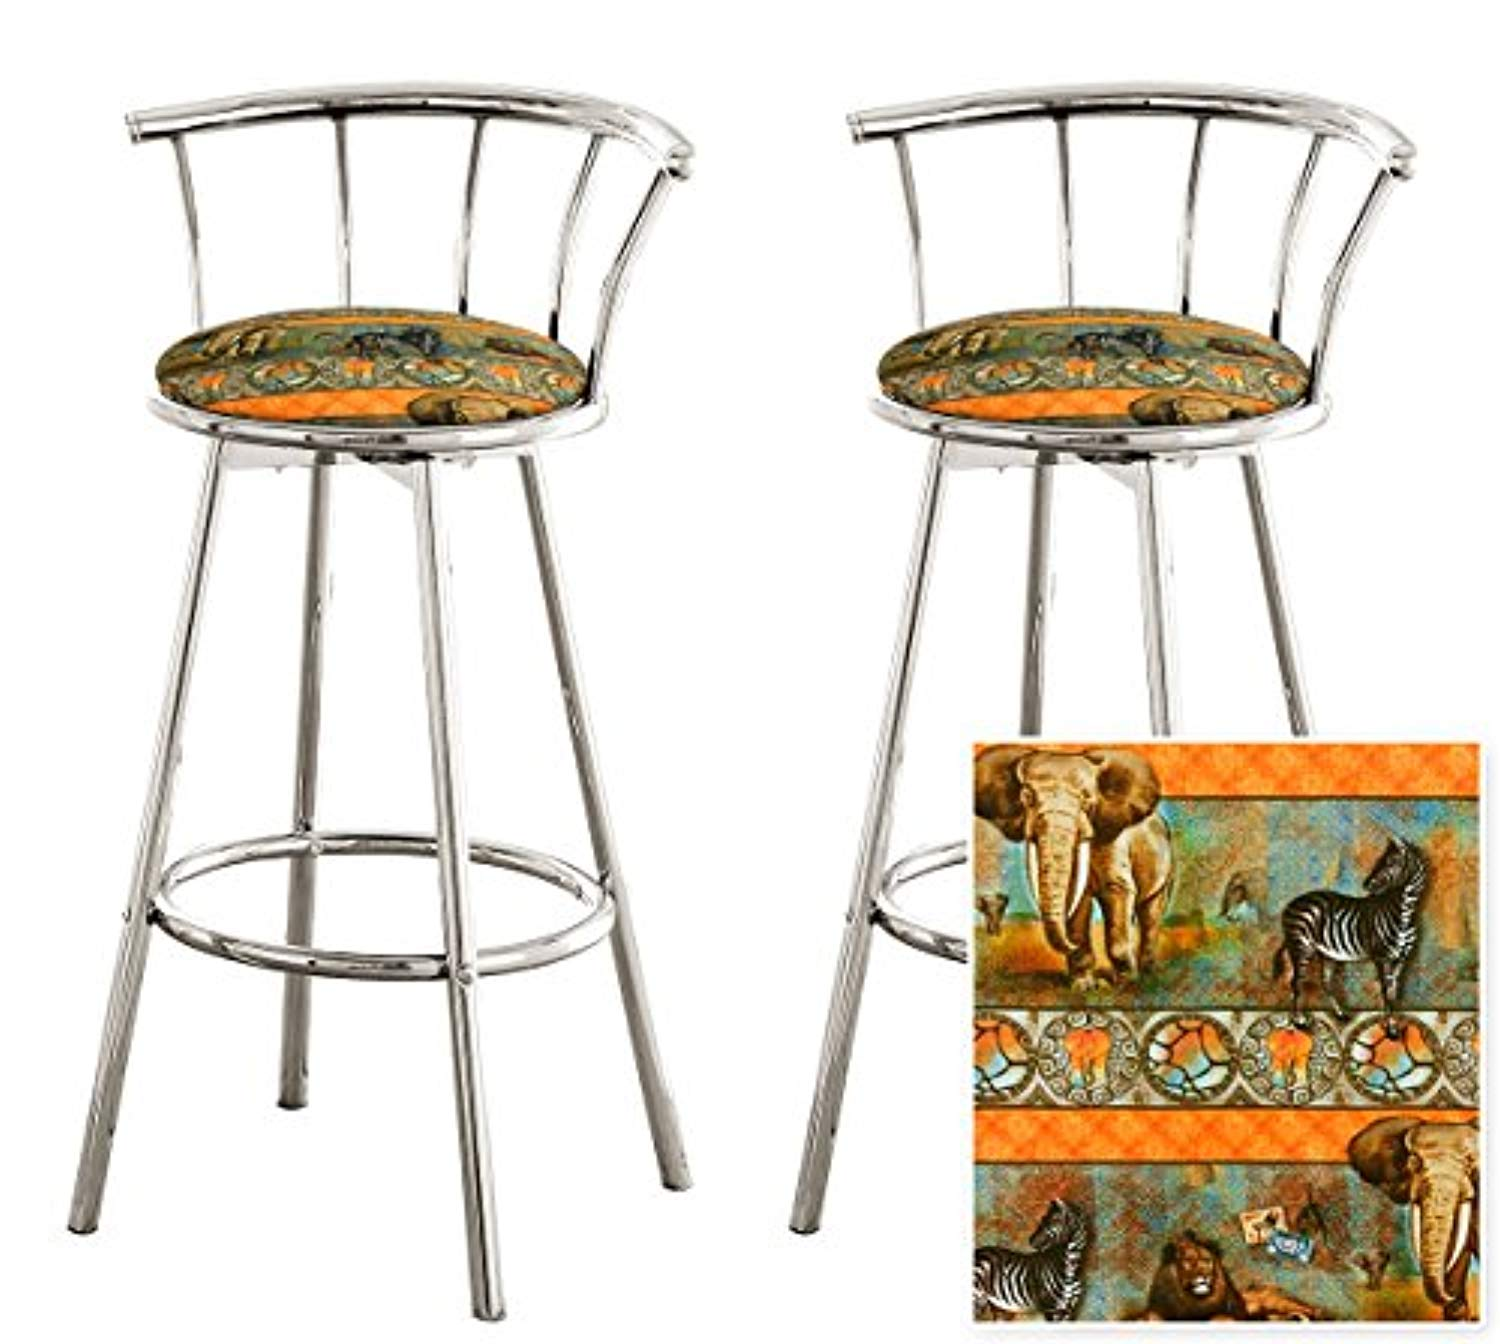 2 African - Serengeti Specialty / Custom Chrome Barstools with Backrest Set